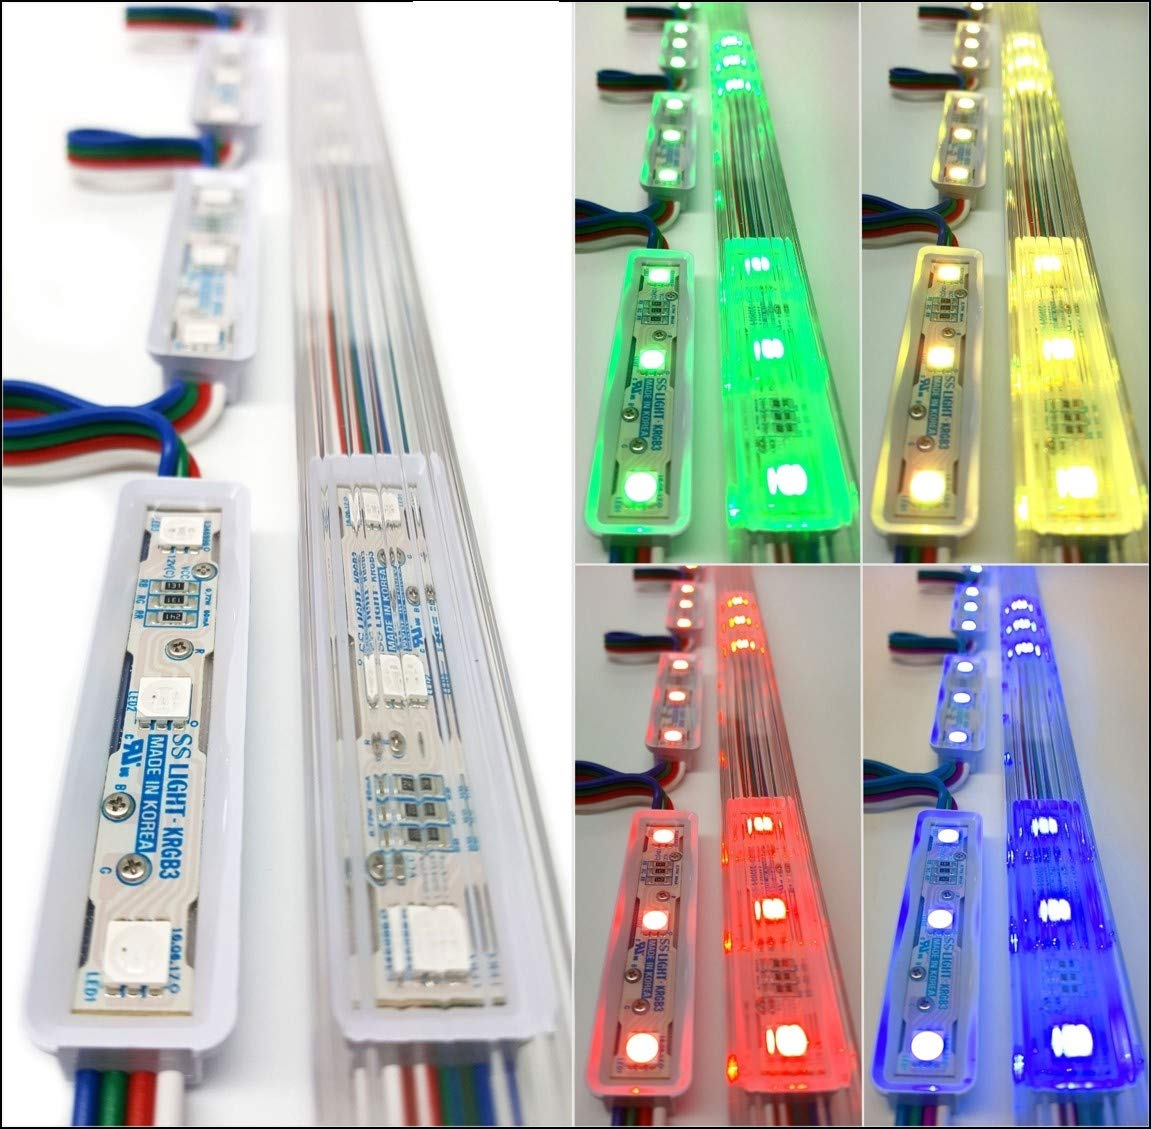 Luxdiyled Storefront Window LED Lights Kit with Protective Tracks (Multi-Colored 50ft)